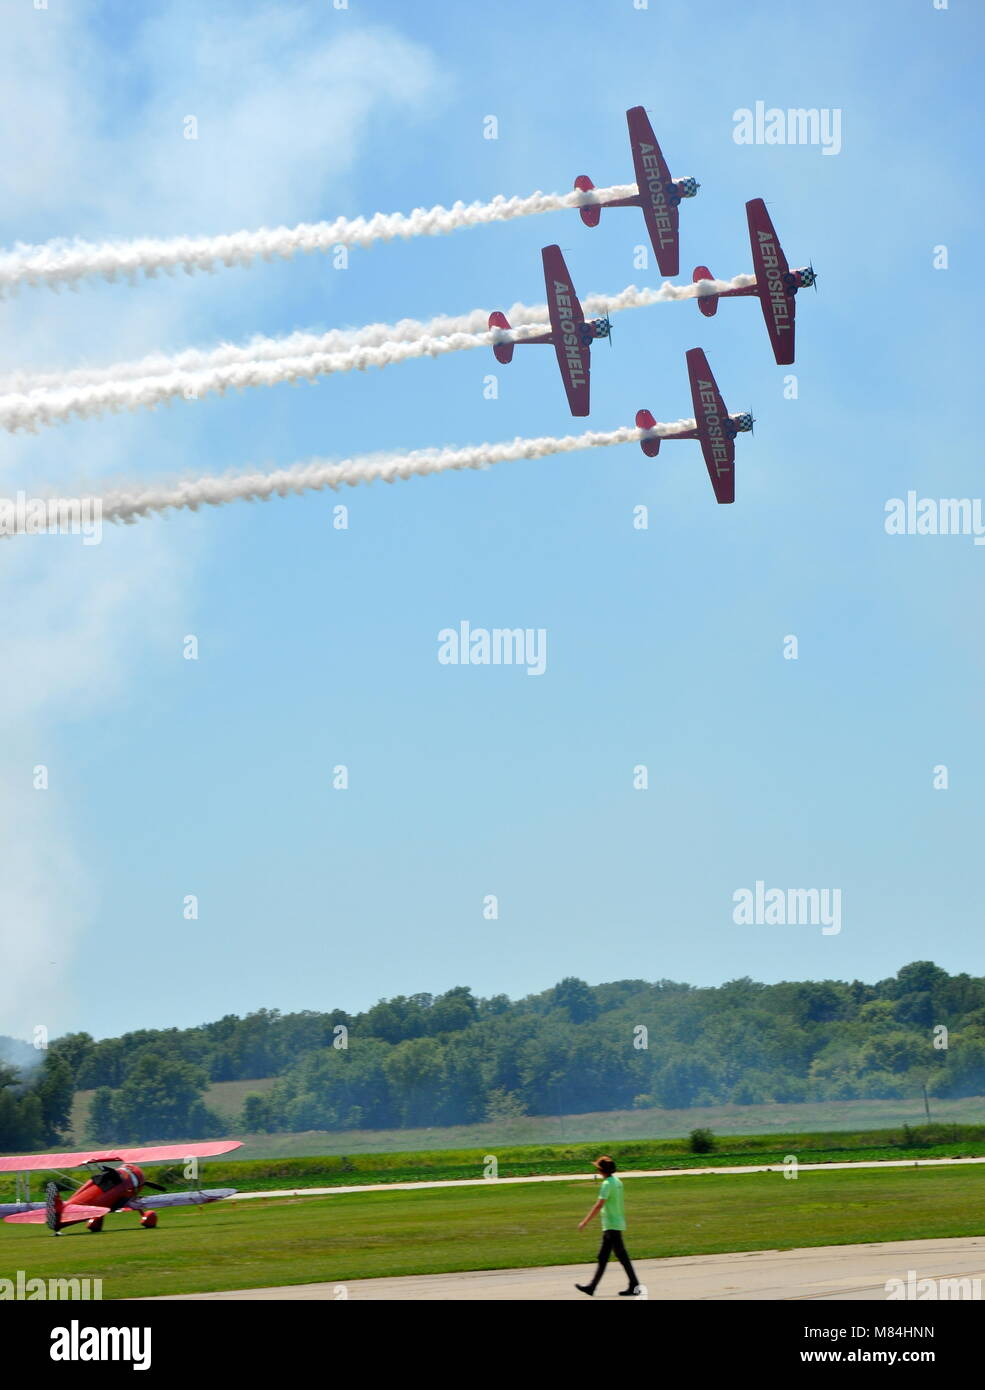 Aeroshell Formations Aerobatic Demonstration Team perform at the 'Tarkio Wingnuts' Airshow in Tarkio, MO - Stock Image